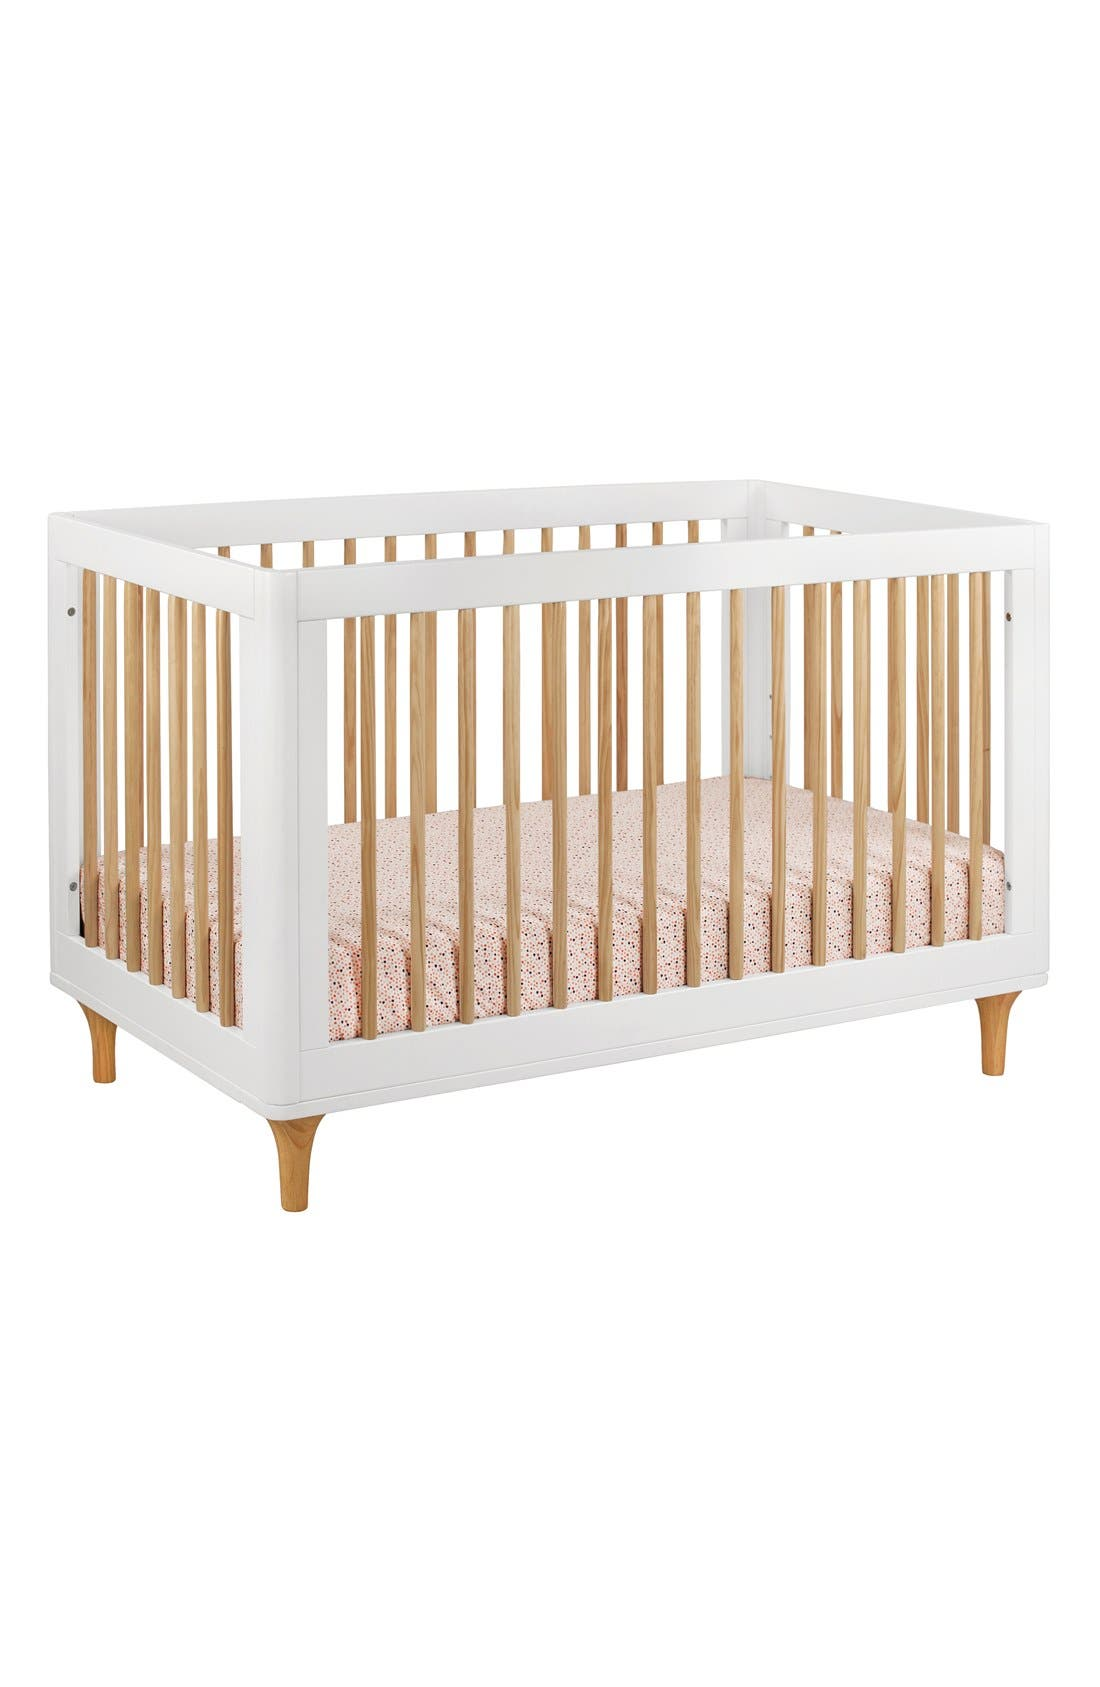 Alternate Image 1 Selected - babyletto 'Lolly' 3-in-1 Convertible Crib